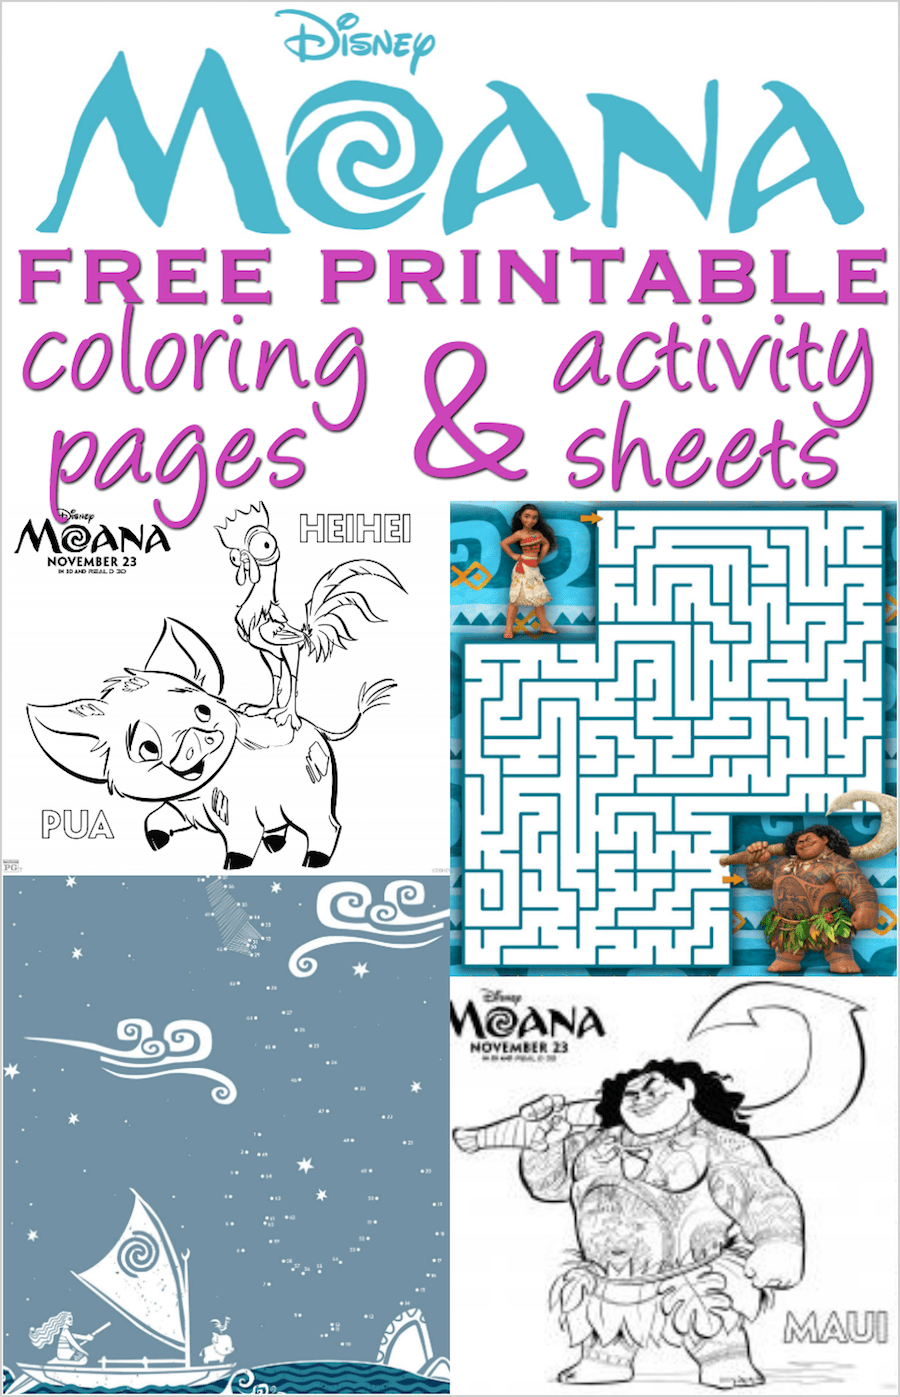 photograph about Moana Sail Printable identified as Moana coloring internet pages and recreation sheets - Previously mentioned 30 totally free